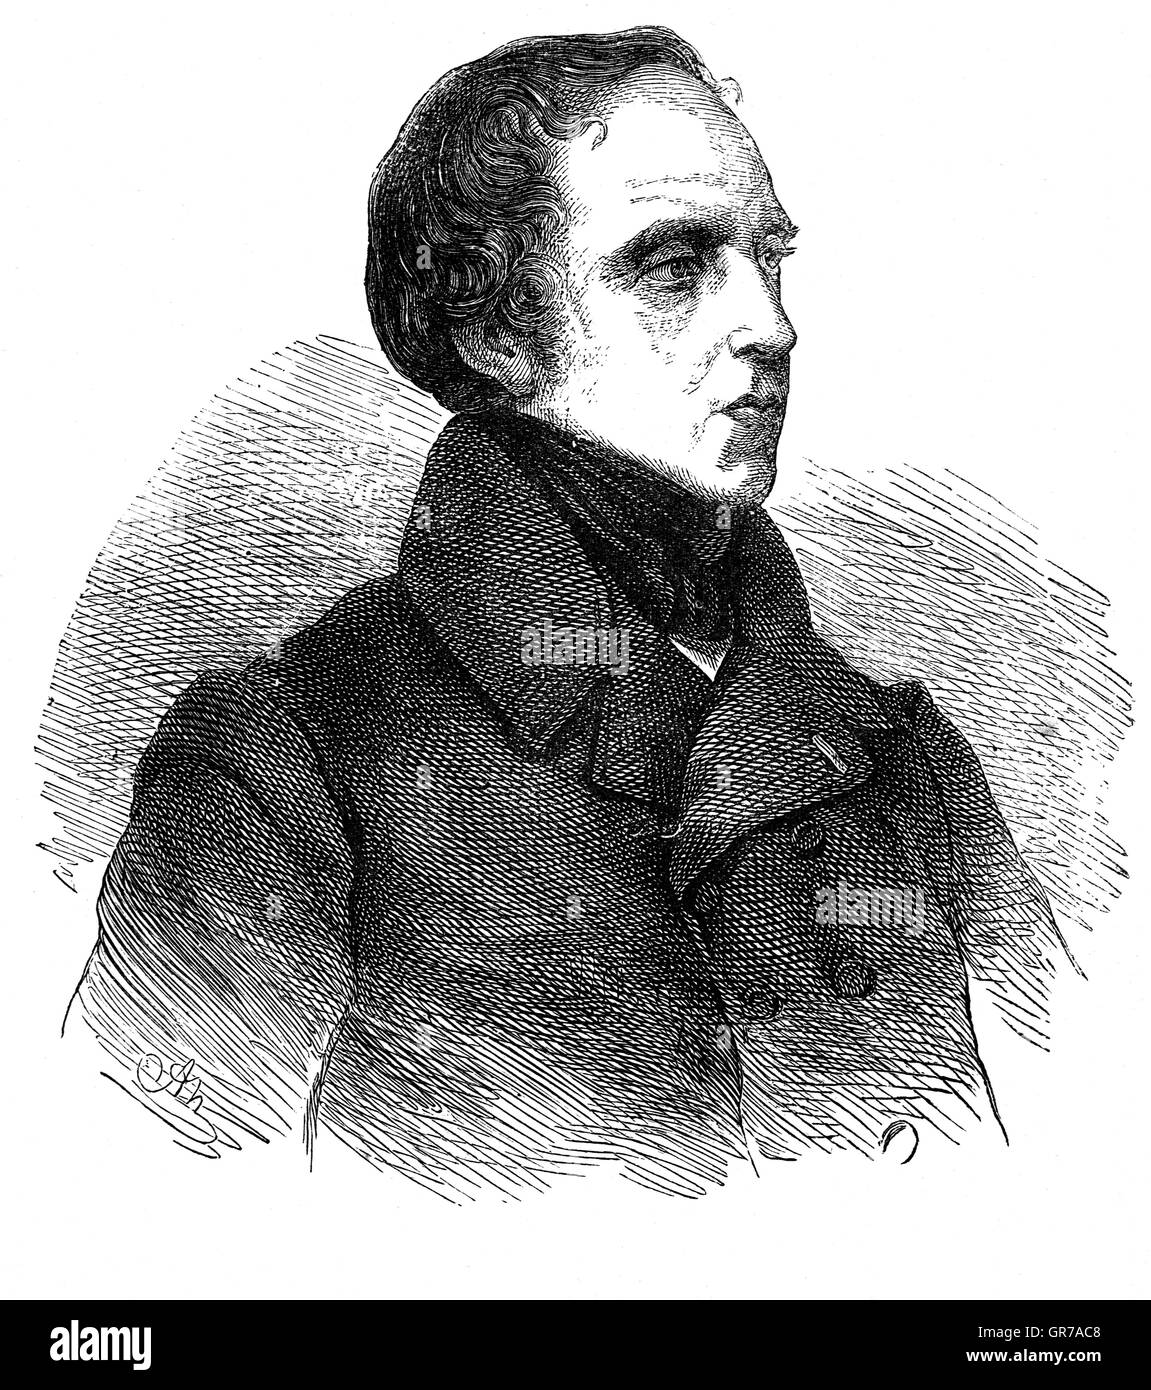 François Pierre Guillaume Guizo (1787 – 1874) was a French historian, orator, and statesman. A dominant figure - Stock Image